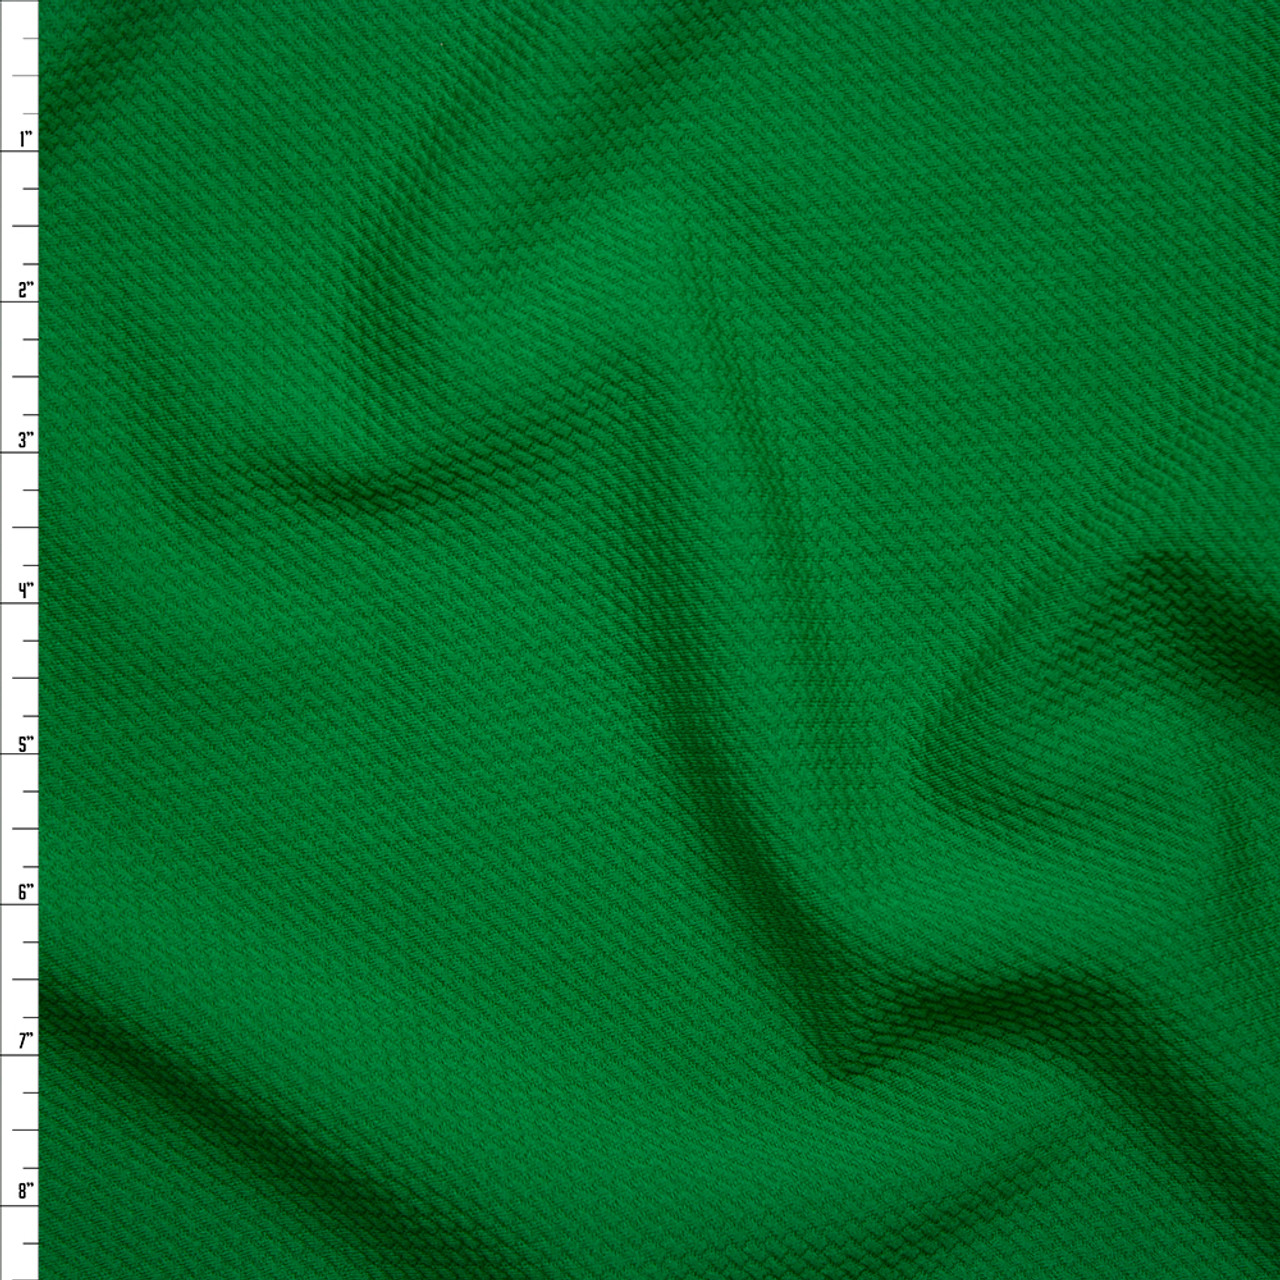 e09d86570a2 Cali Fabrics Solid Kelly Green Braided Texture Liverpool Knit Fabric ...